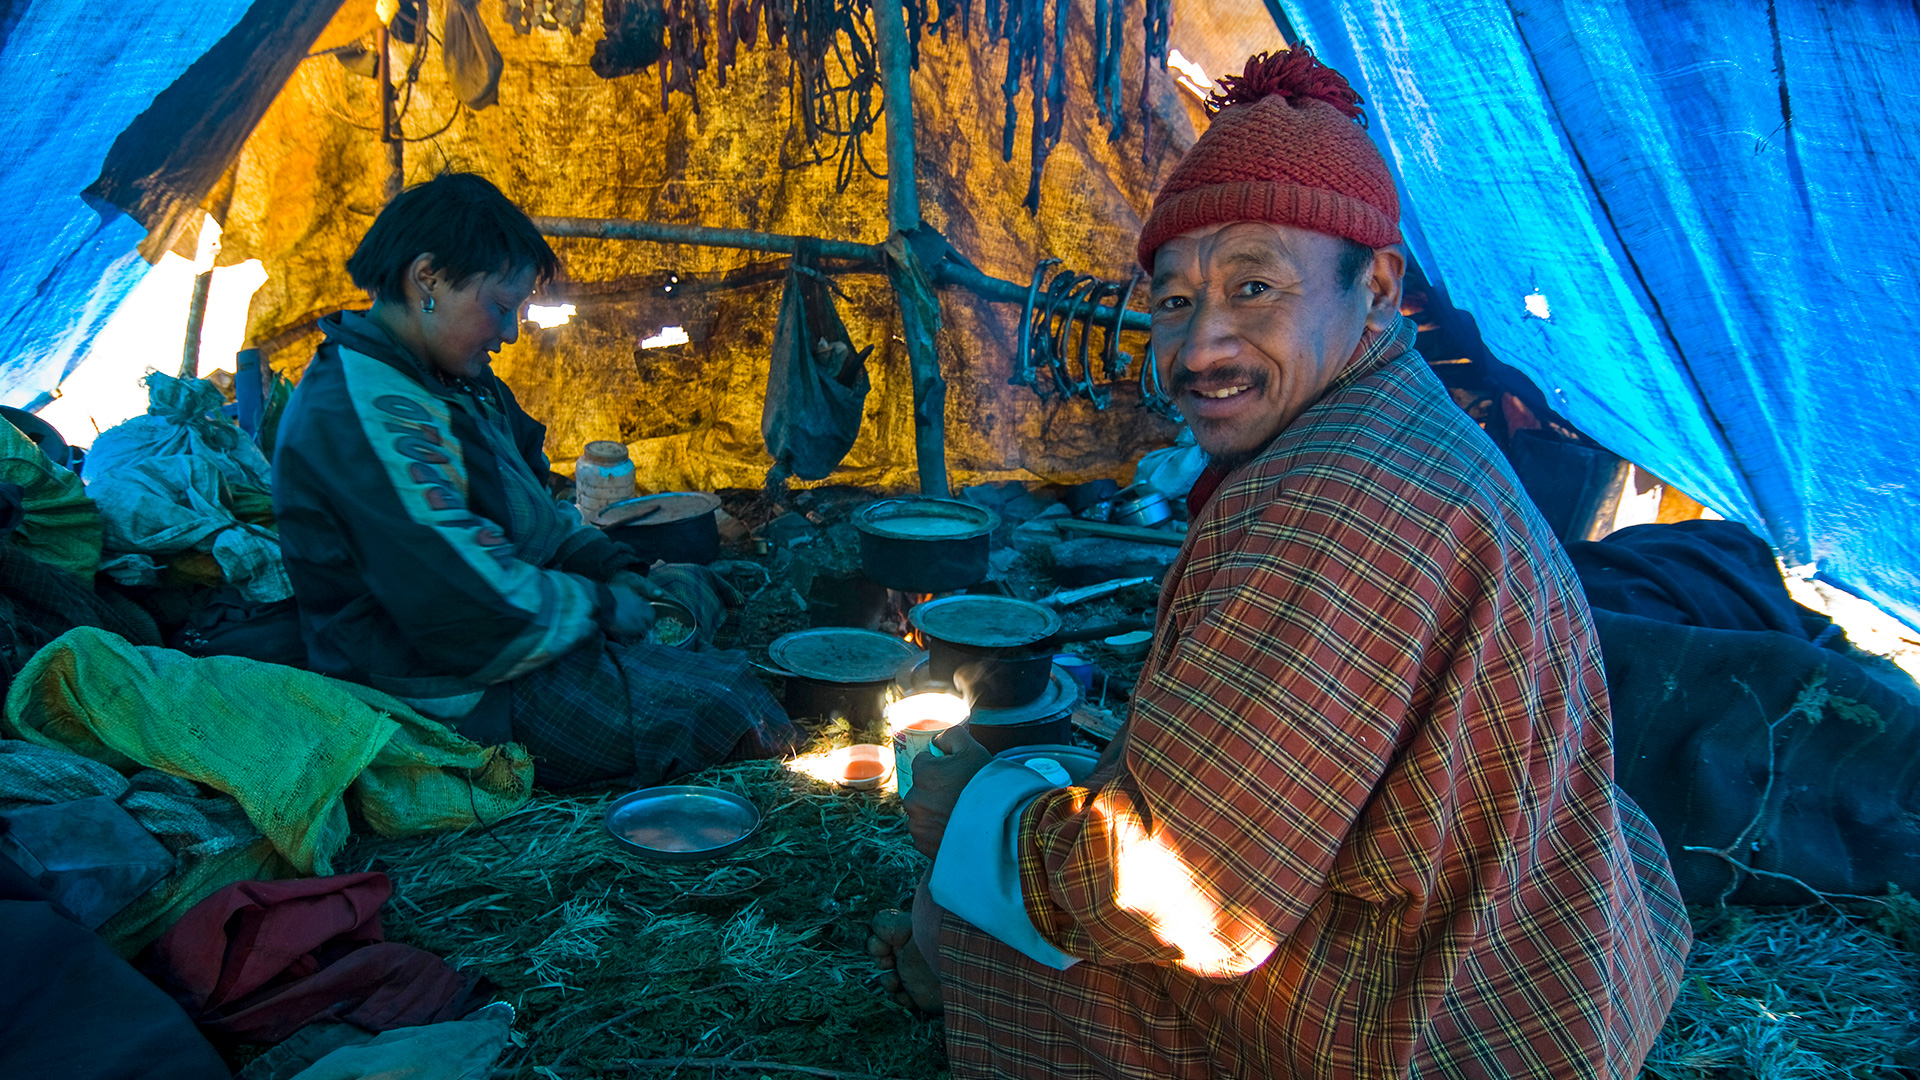 Nomads in their tent in rural Bhutan